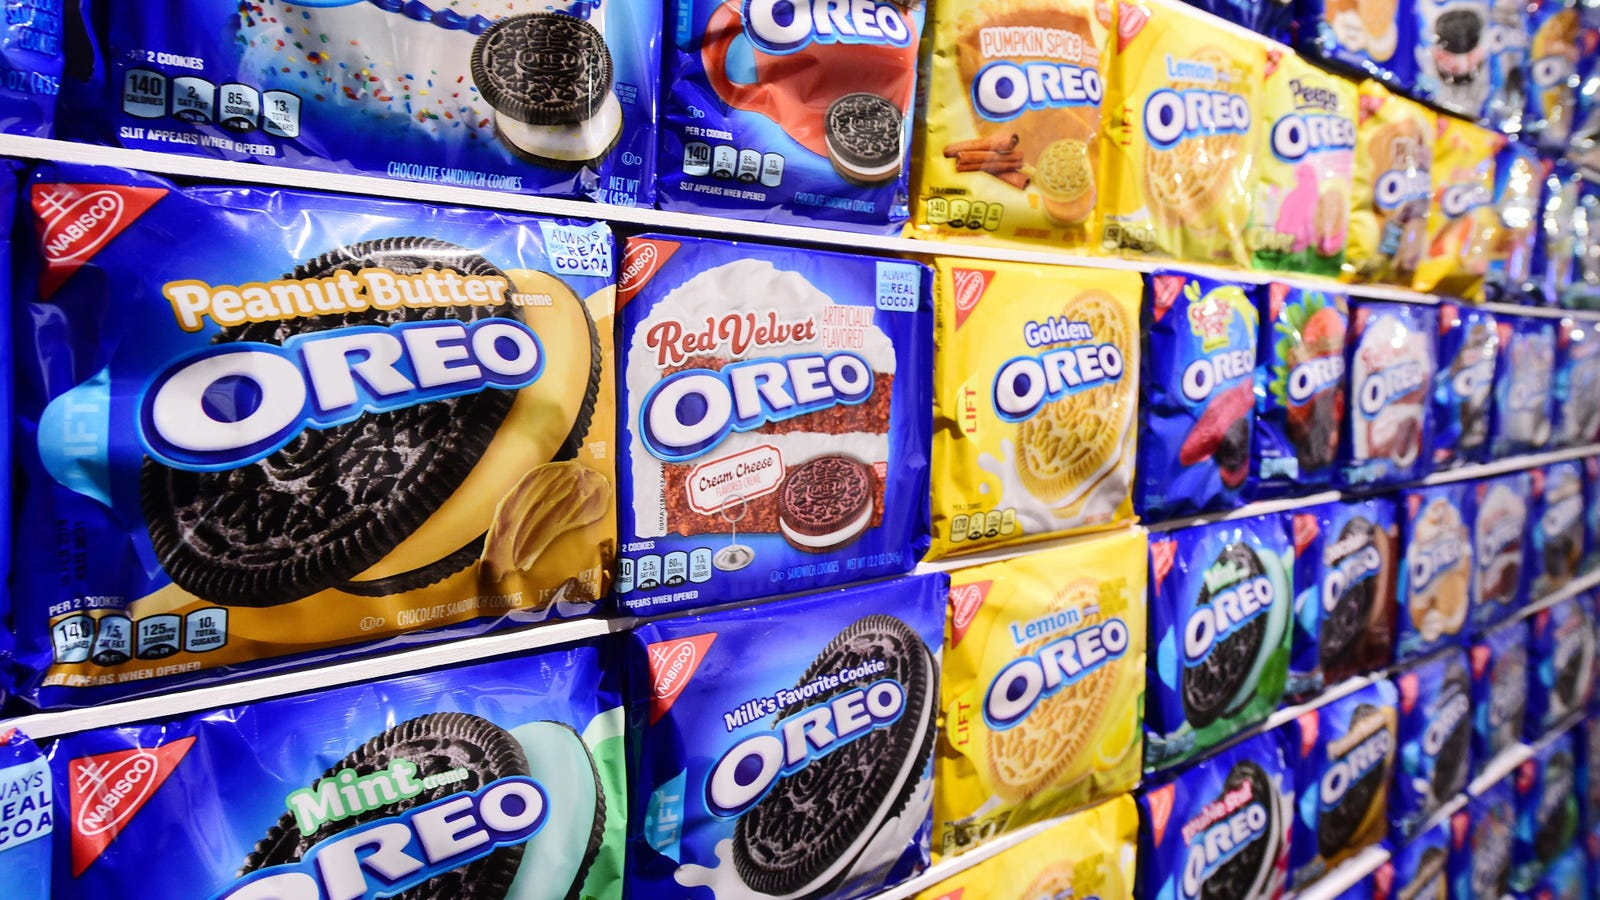 Amazon tempts lazy snackers with monthly Oreo subscription